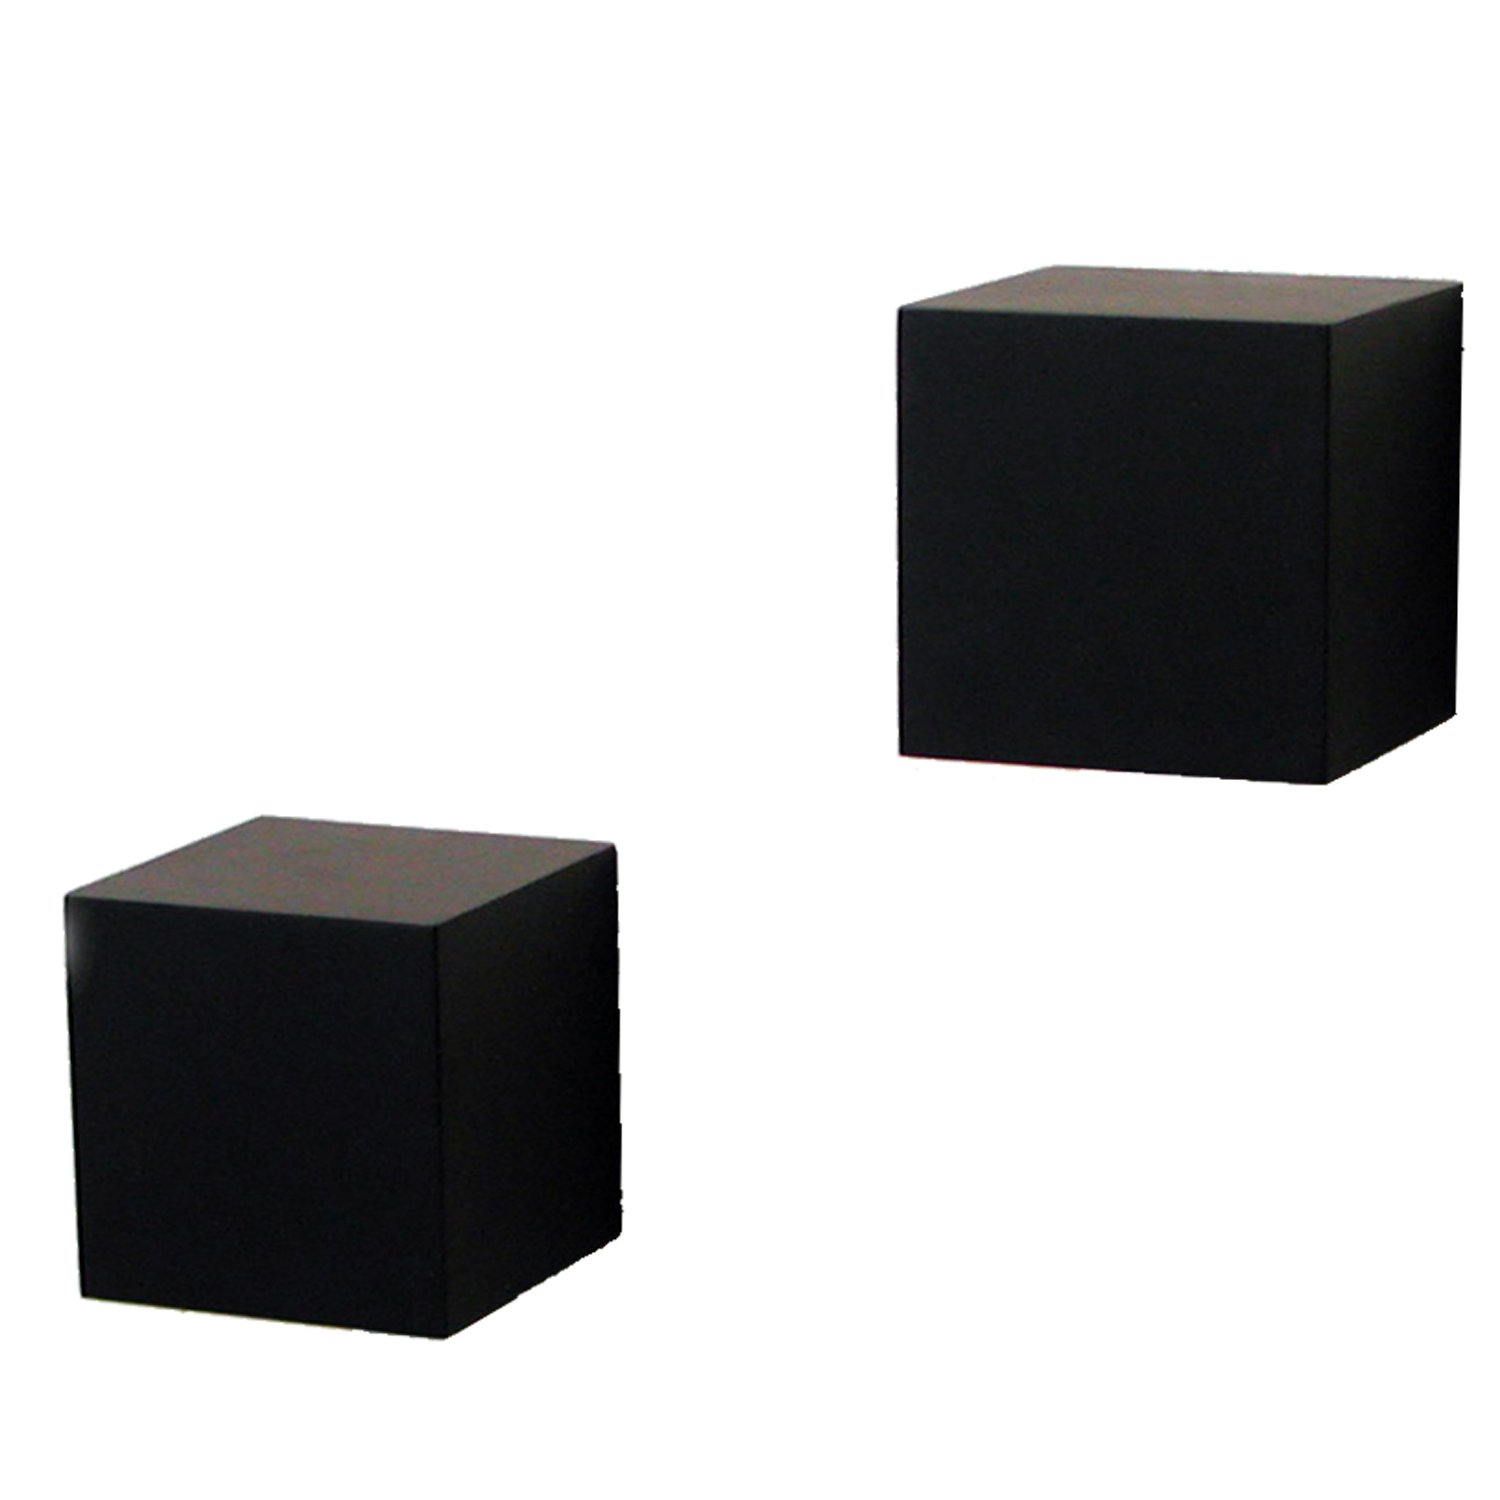 Amazon shelf made decorative wall cubes pair 5 inch x 5 amazon shelf made decorative wall cubes pair 5 inch x 5 inch black knape vogt mfg home kitchen amipublicfo Image collections